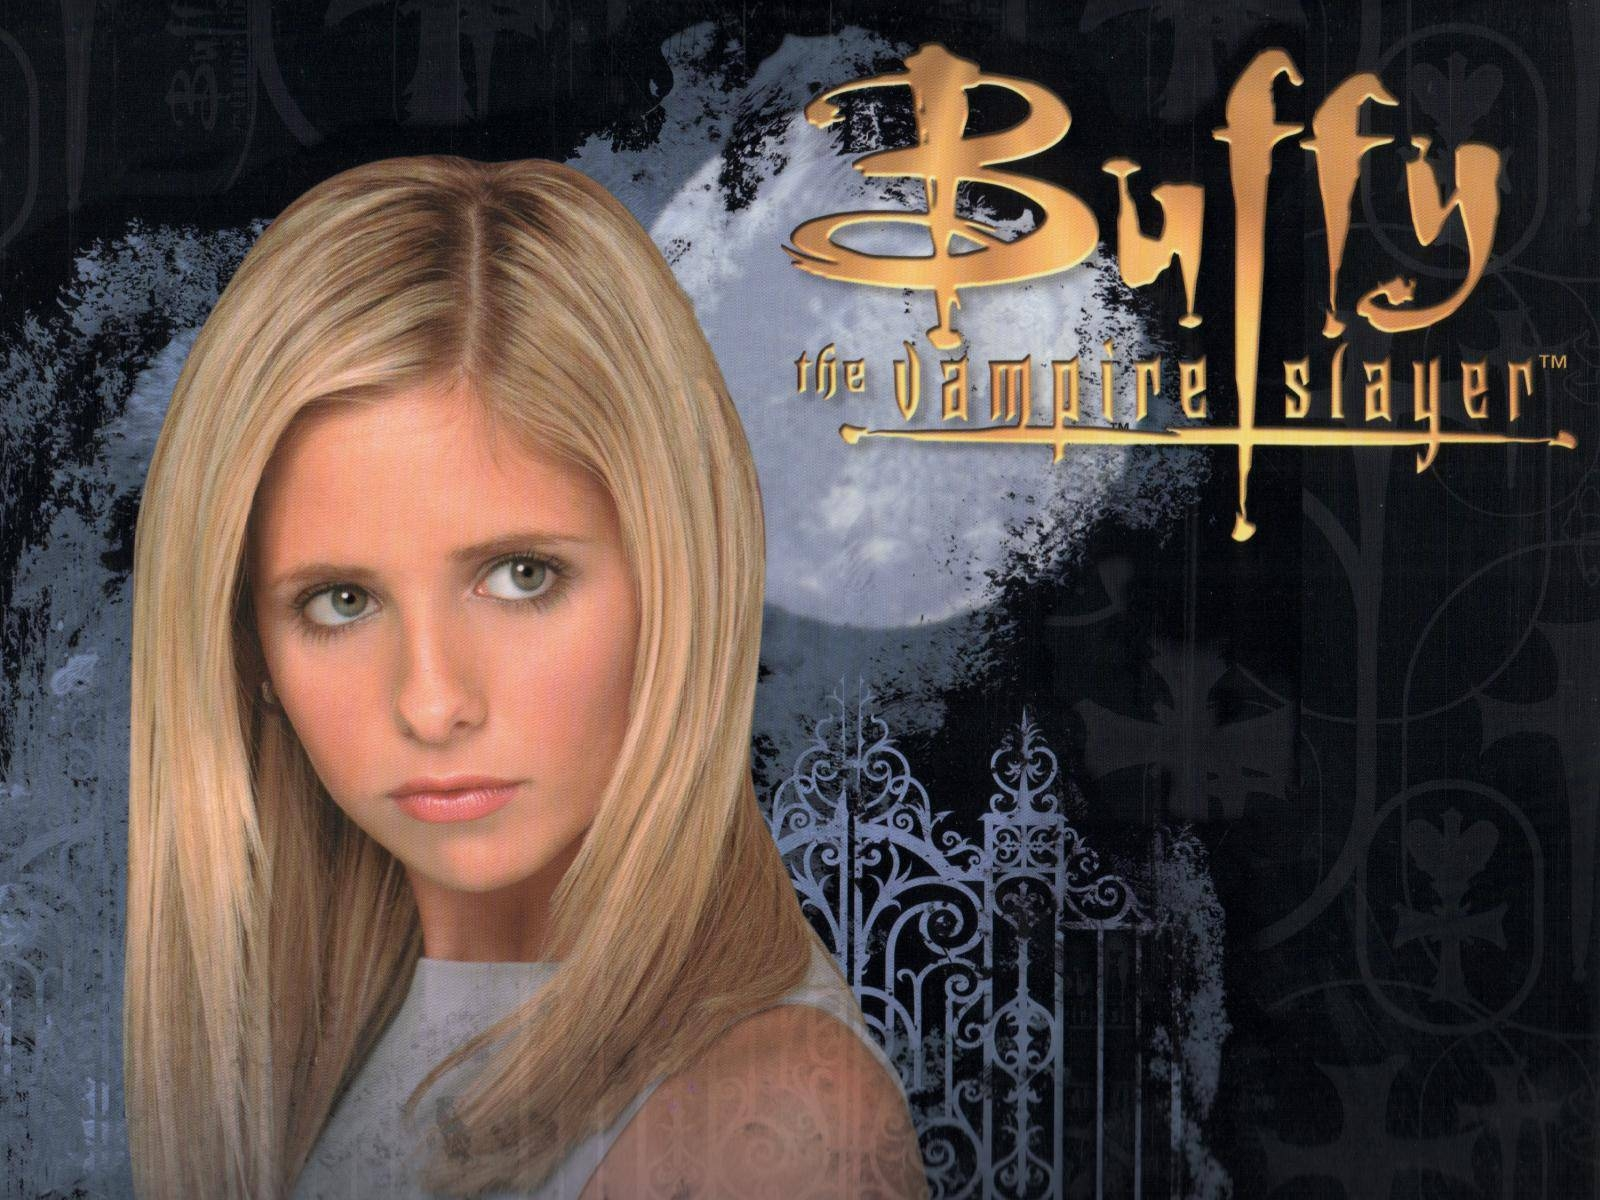 http://1.bp.blogspot.com/-V9jjypxhnYU/T8JM84JjY0I/AAAAAAAAMBs/FwB9WKc71HU/s1600/Buffy_the_Vampire_slayer_tv_wallpaper_1600x1200.jpg